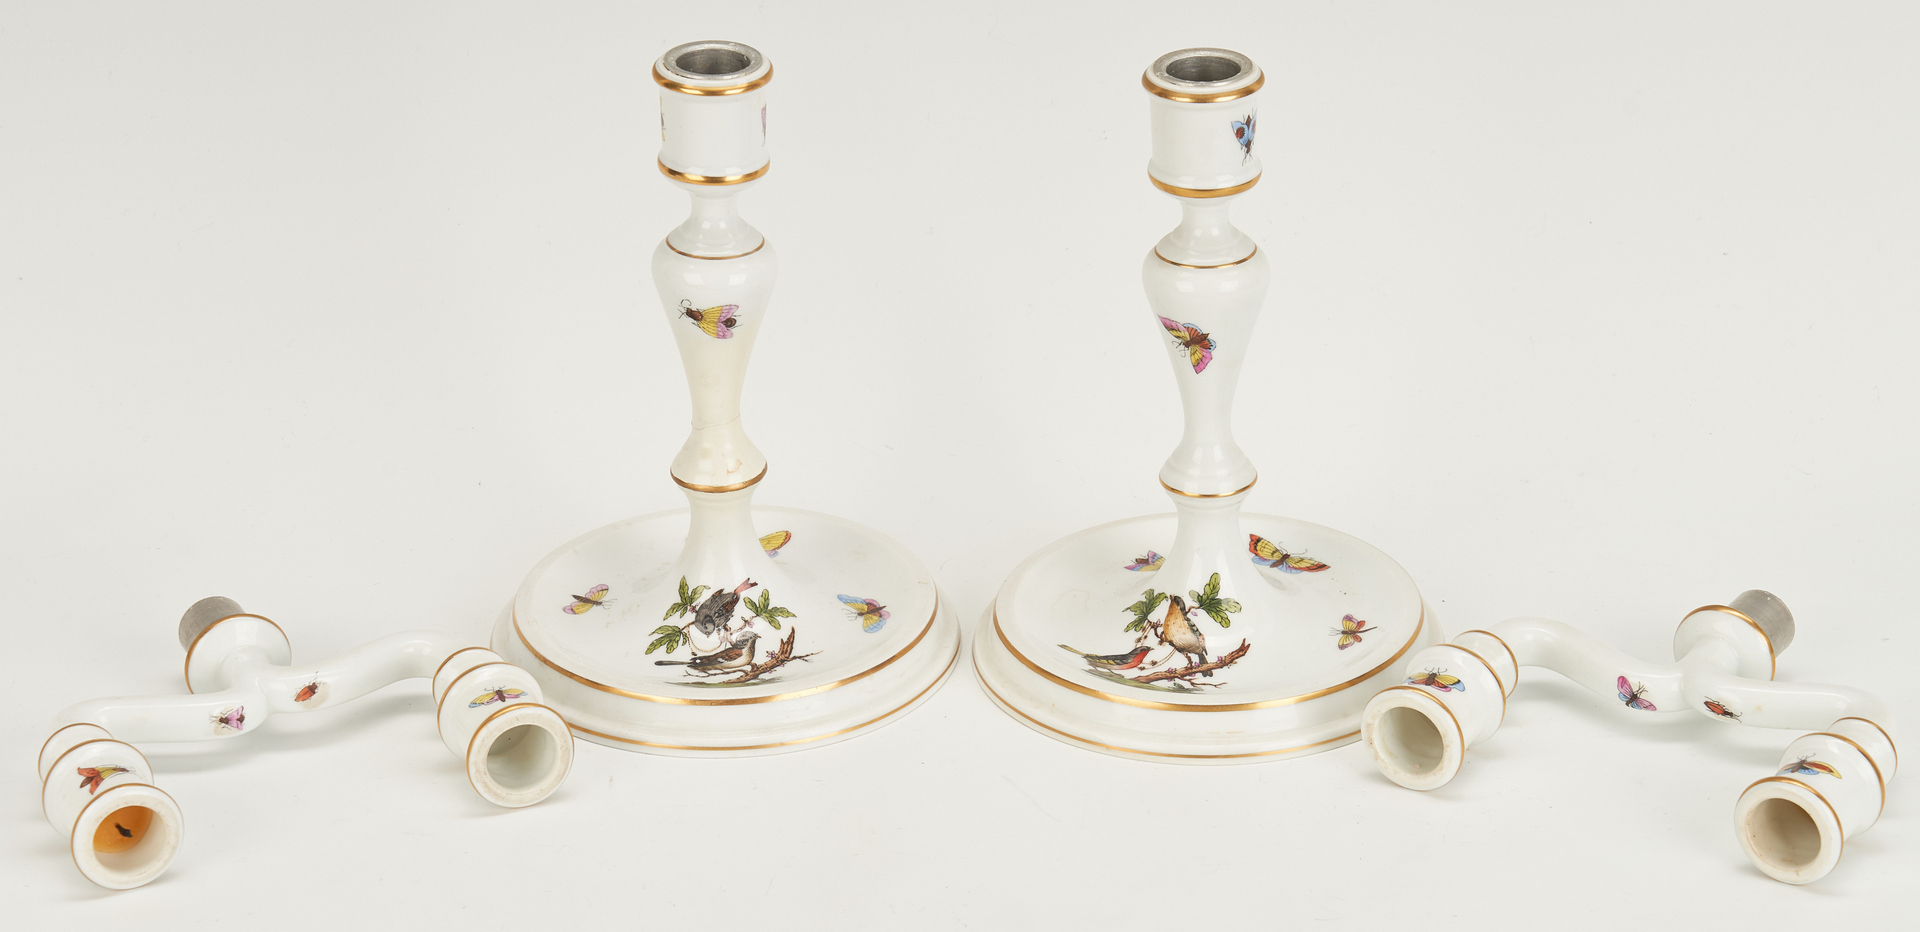 Lot 264: Herend Porcelain Serving Pieces & Accessories, 13 items